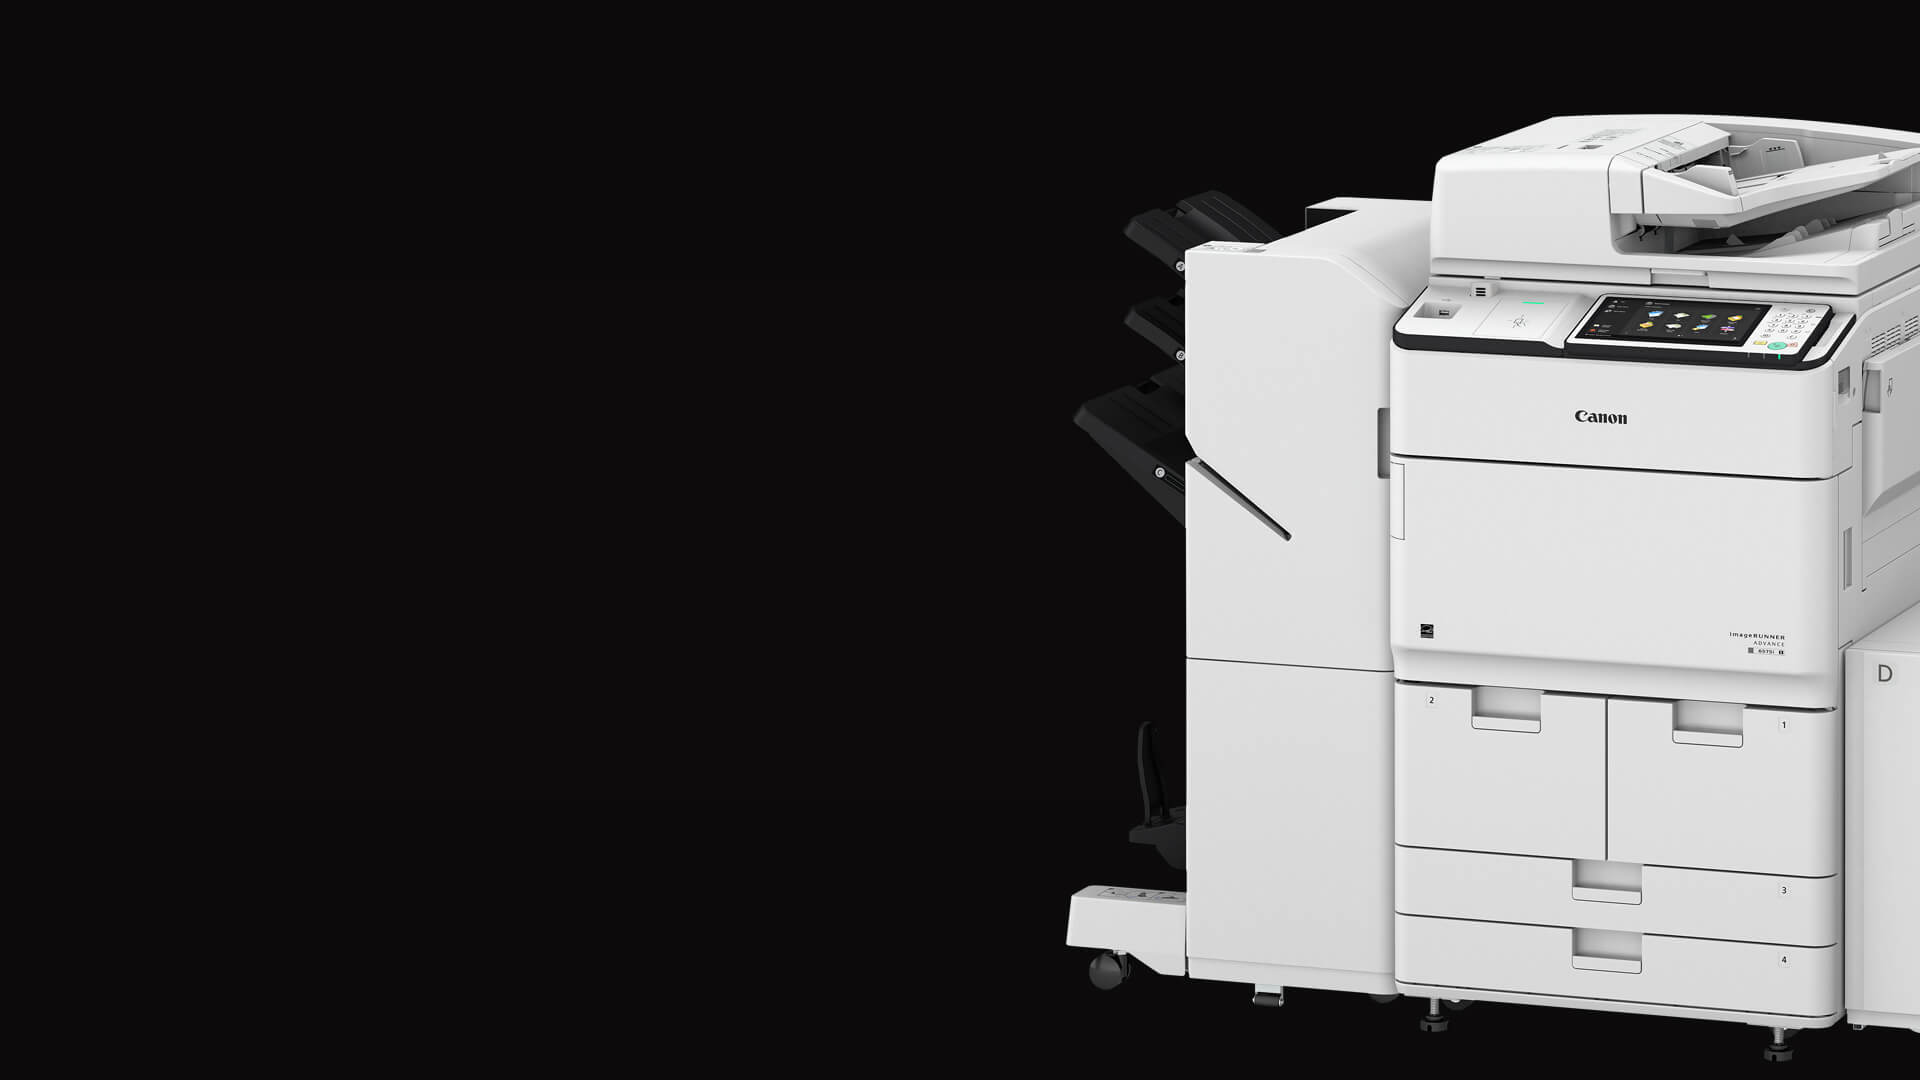 imageRUNNER ADVANCE C6500 II series